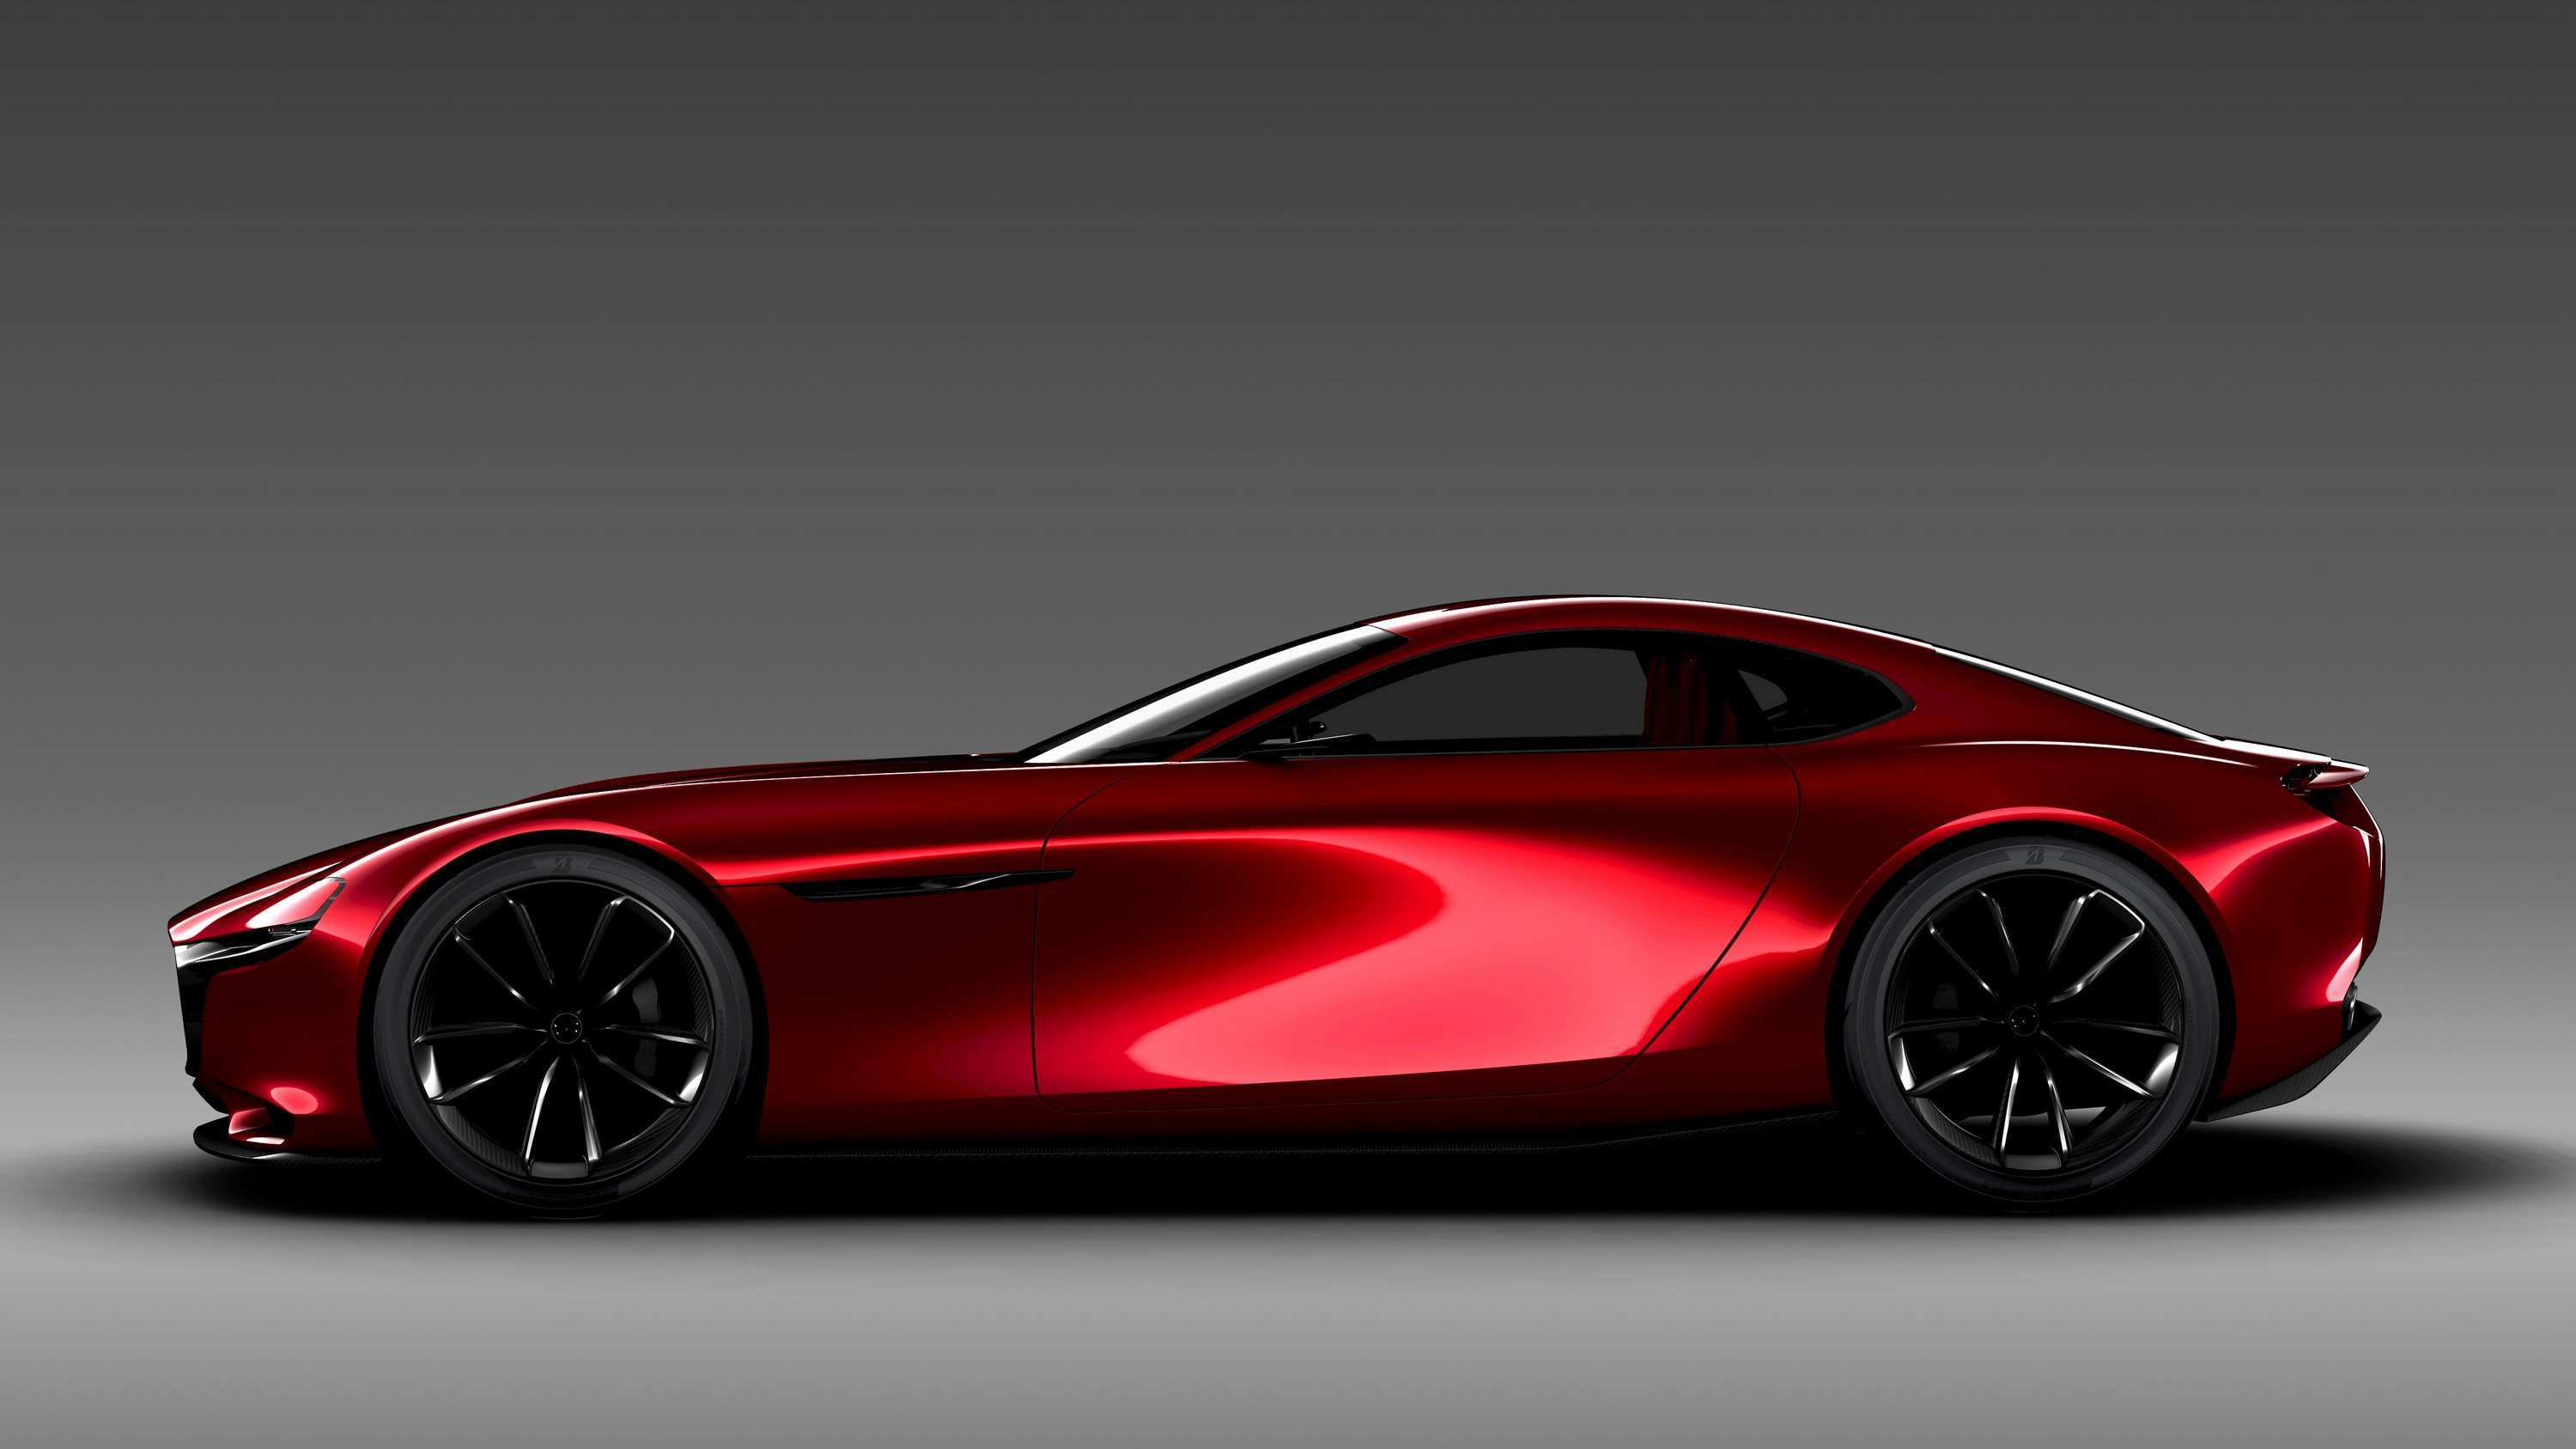 51 New Mazda Rx7 2020 Release Date And Concept